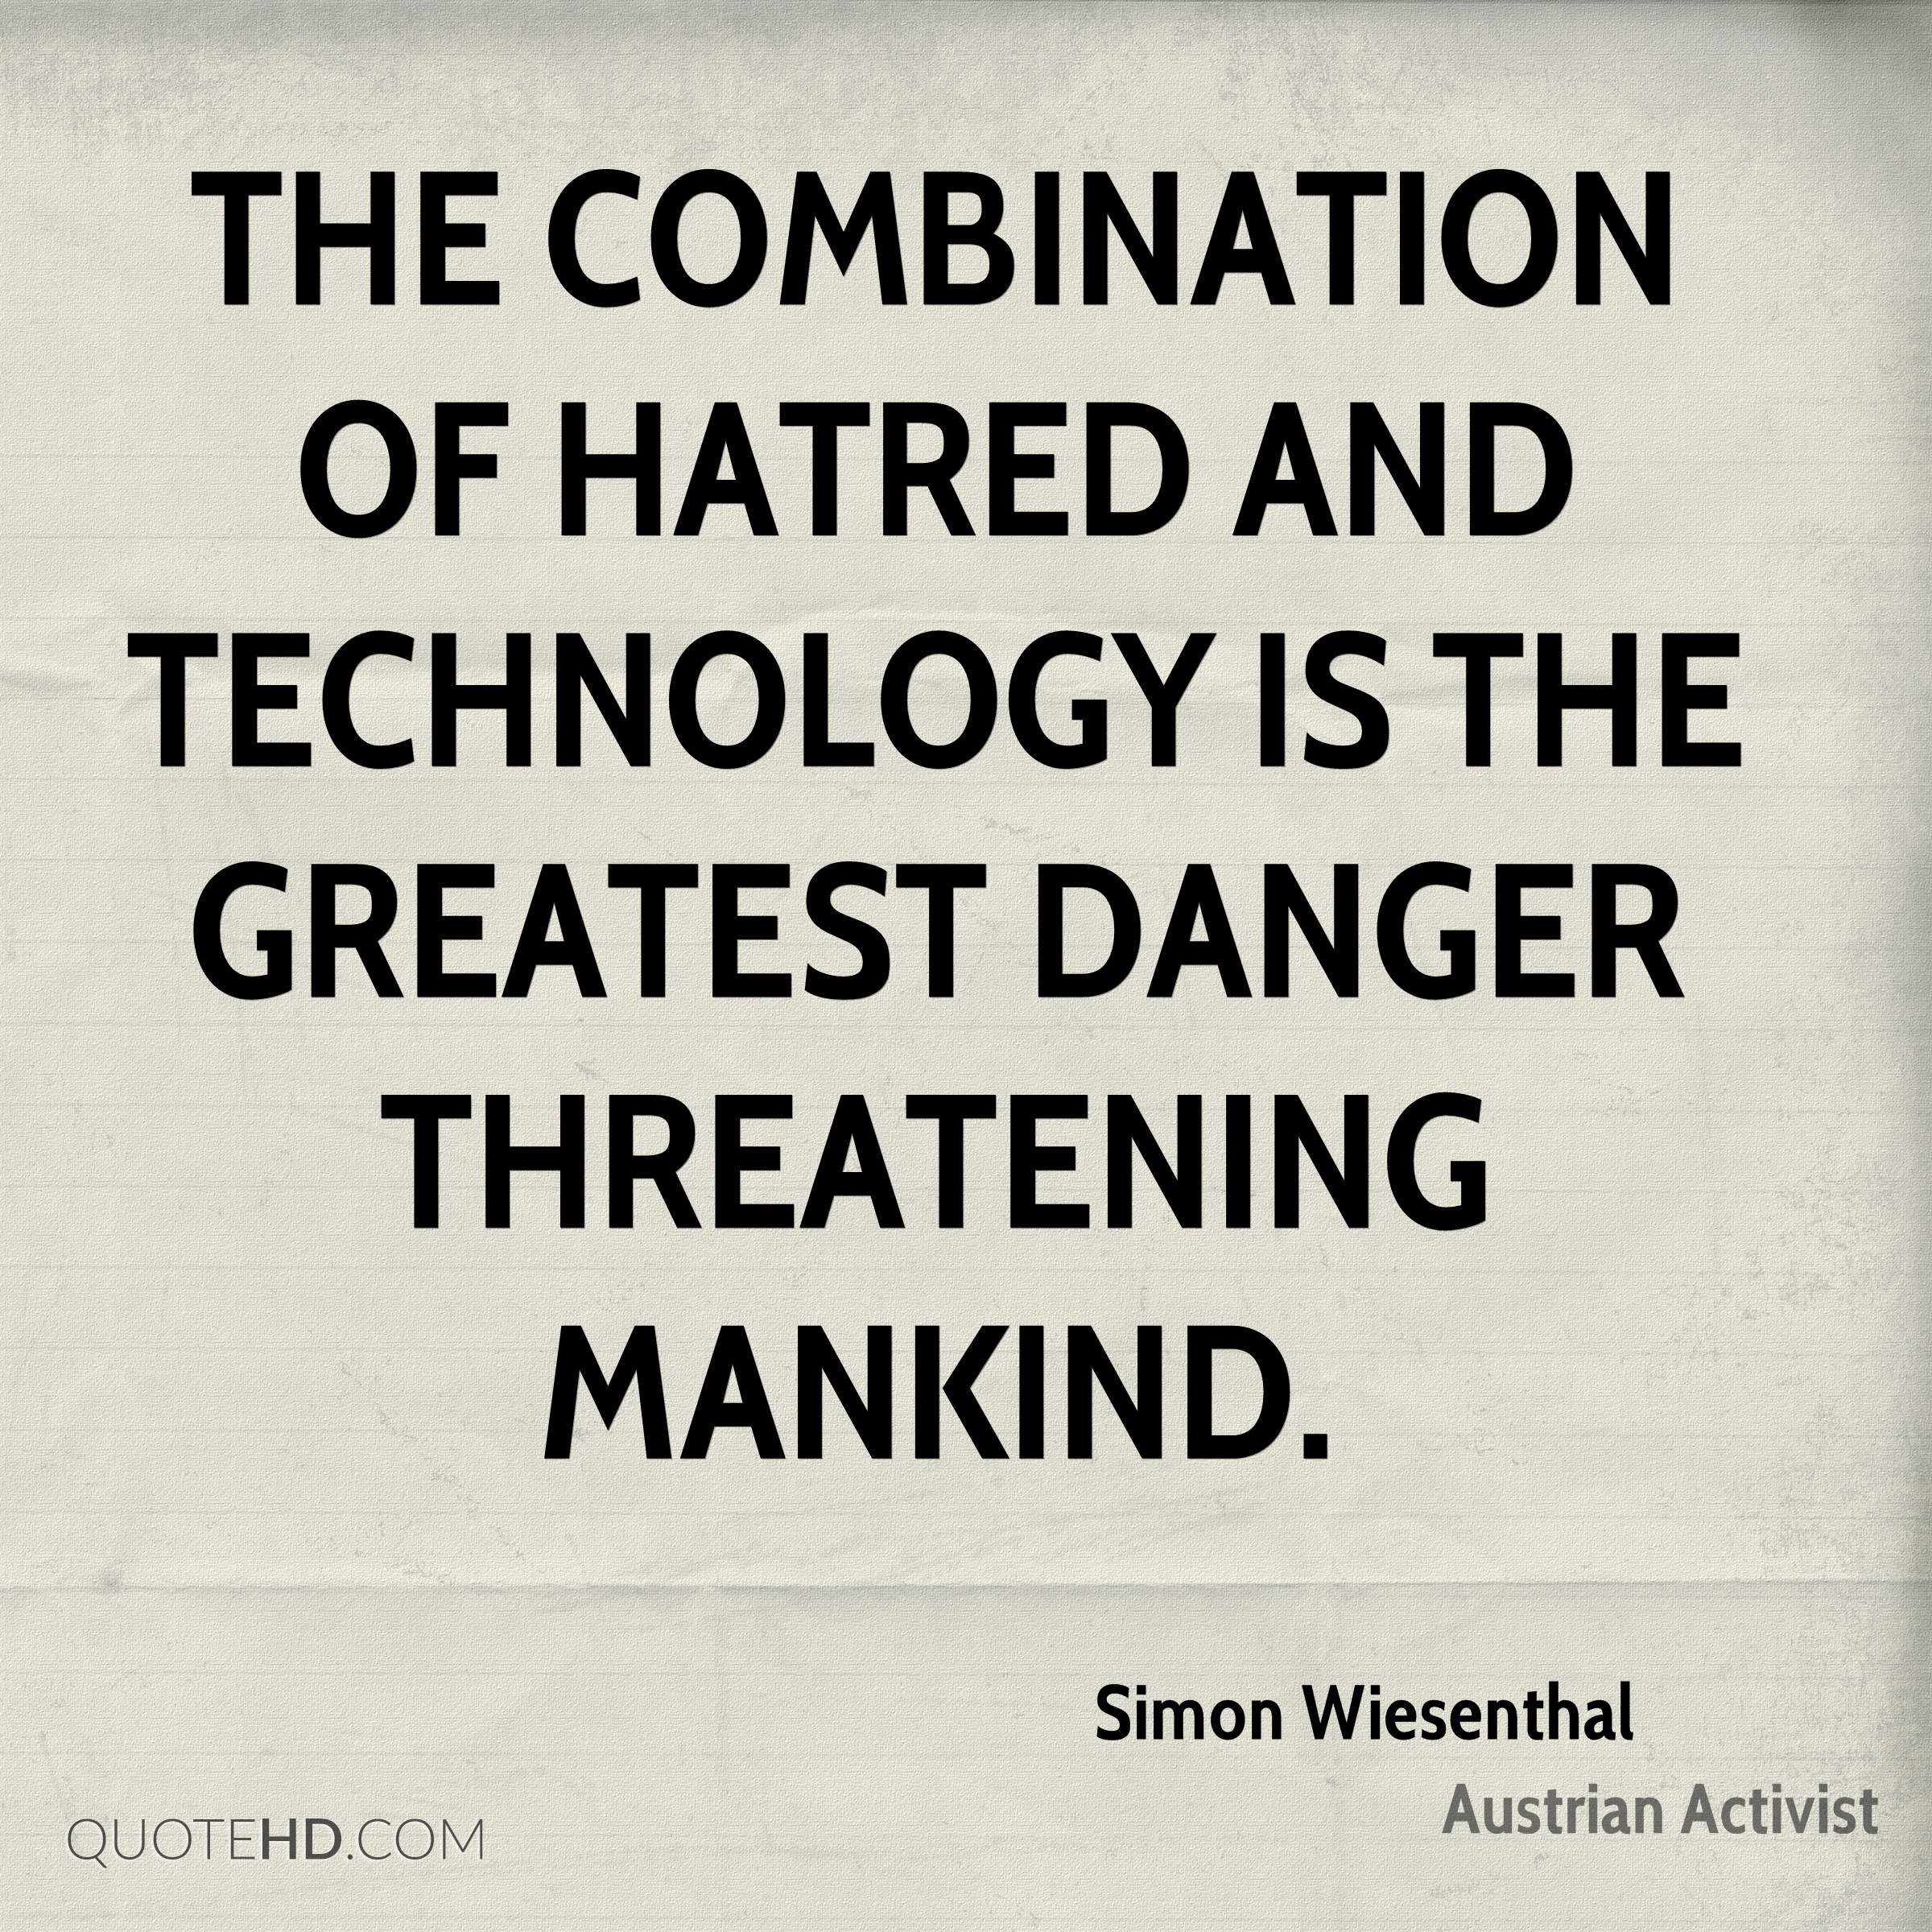 The combination of hatred and technology is the greatest danger threatening mankind.